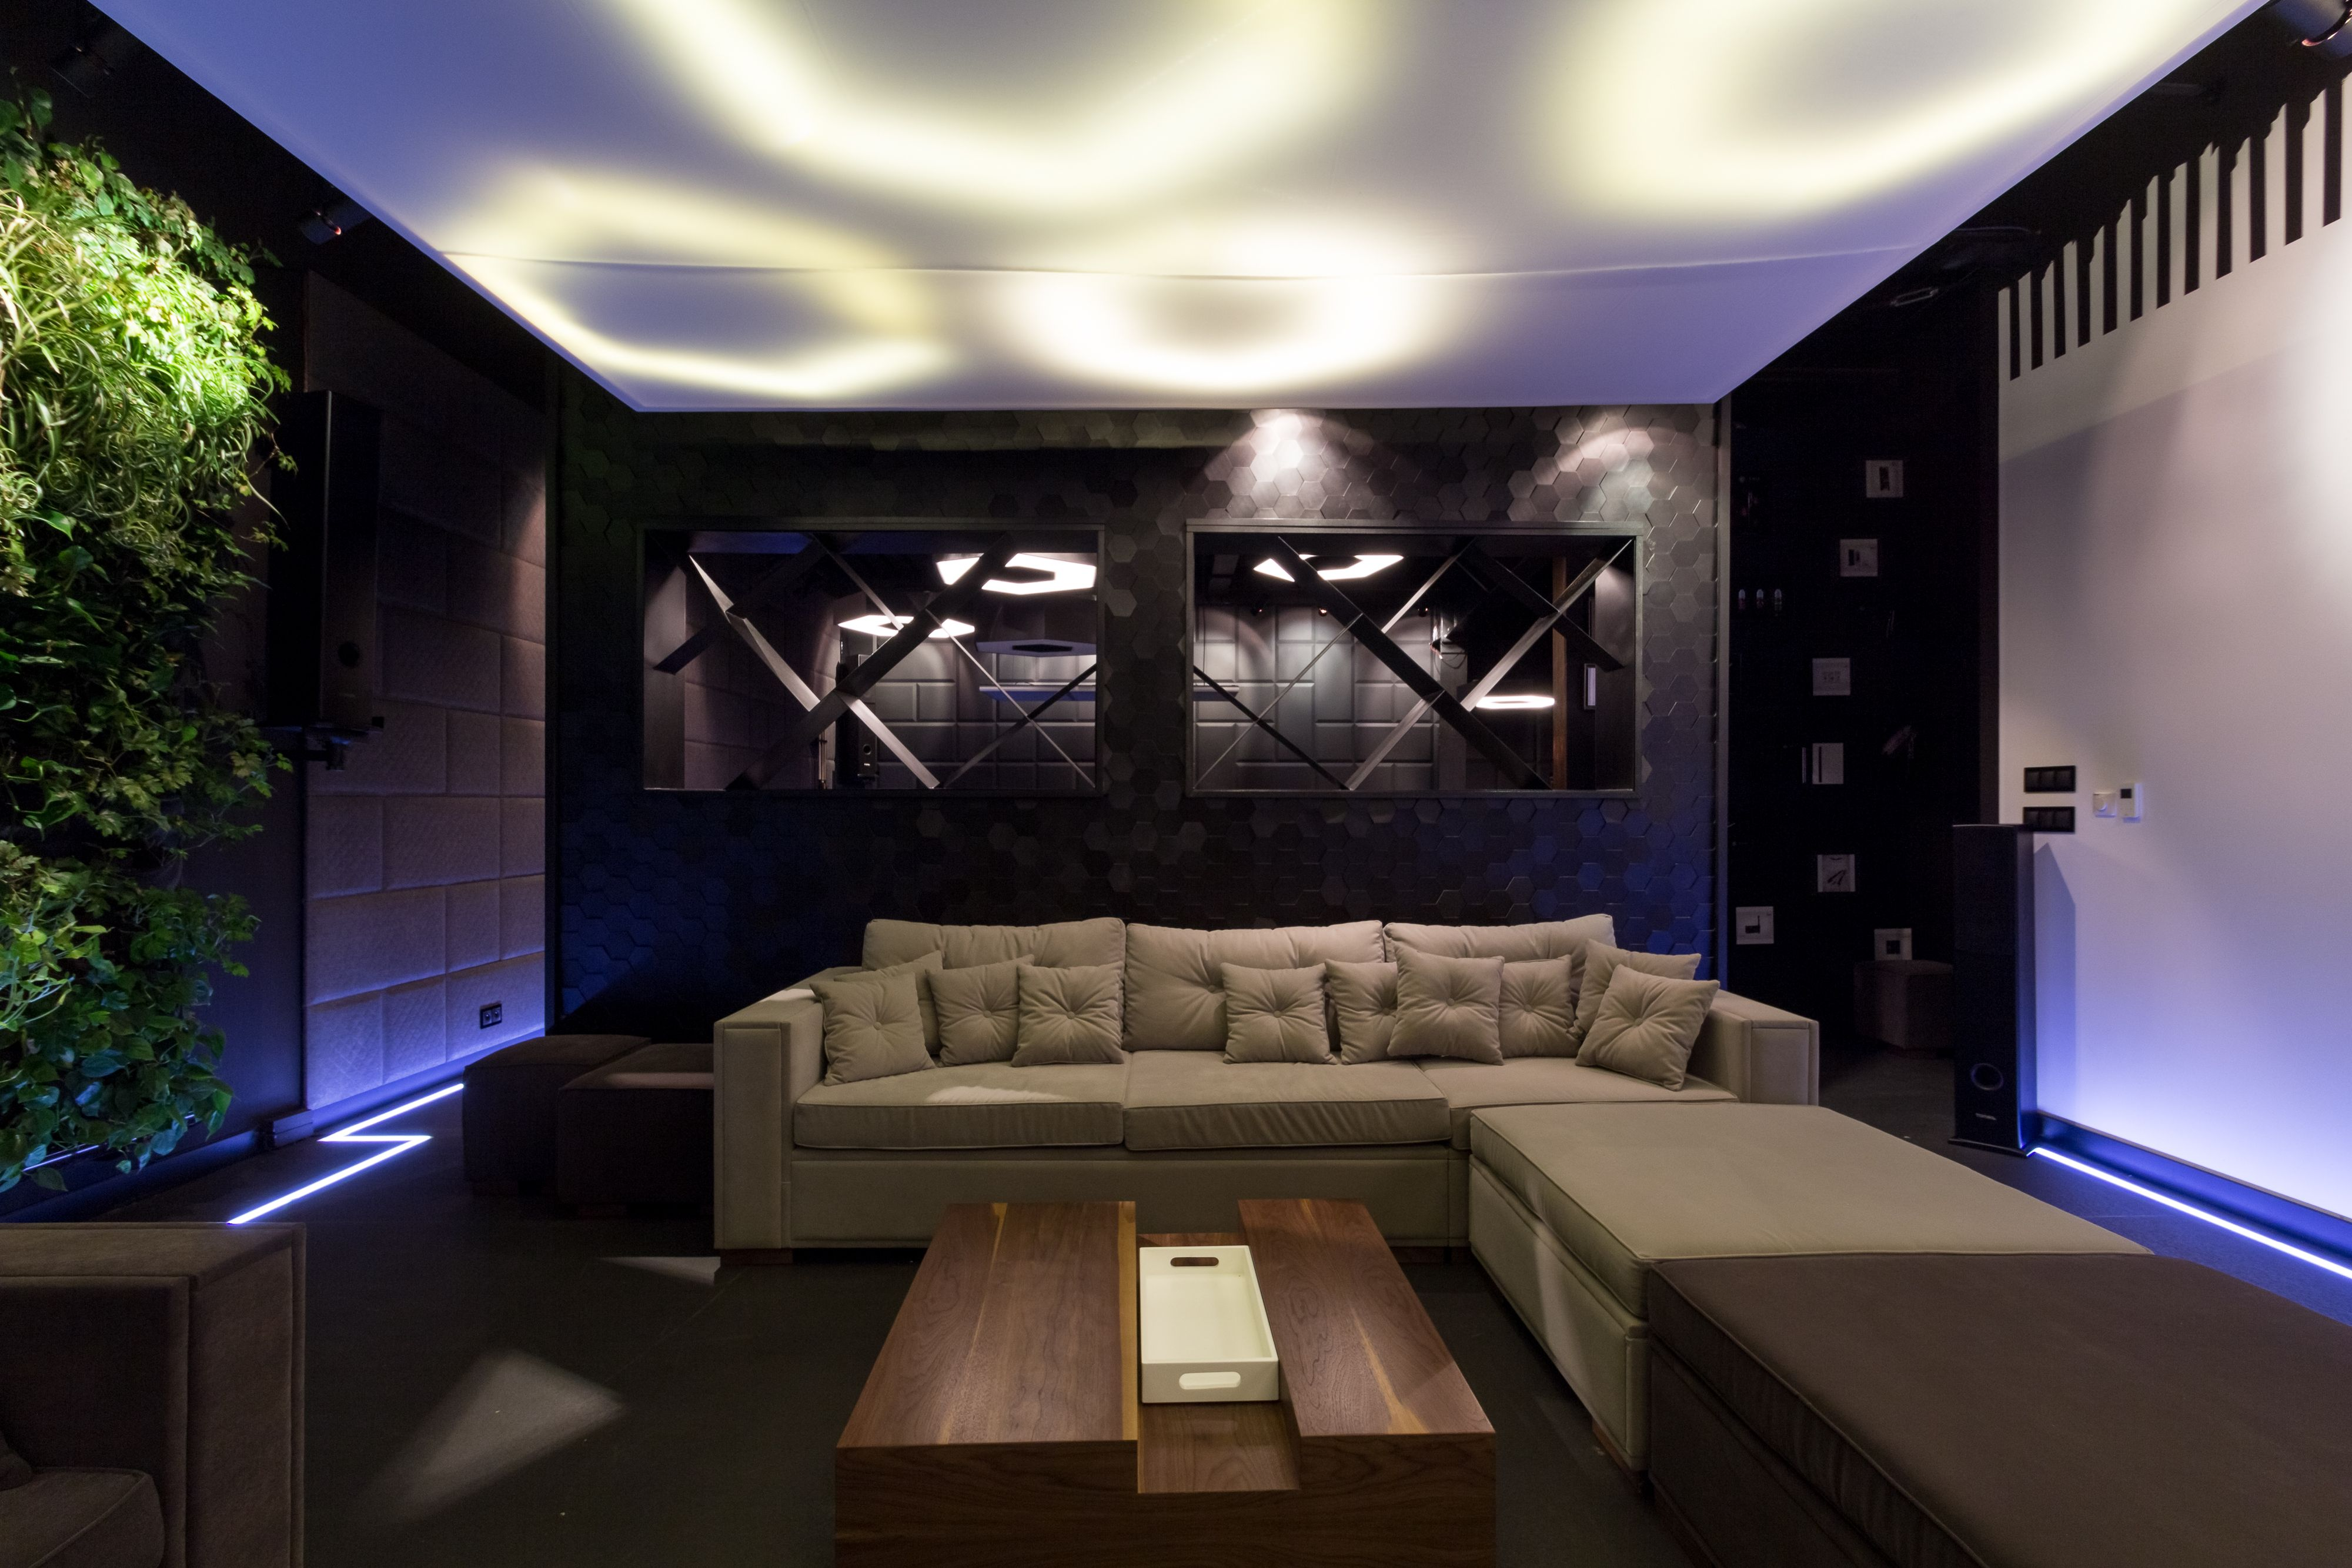 Office Chillout Room Office Relax Room Office Beak Room Club Design Club Ideas Chillout Room Design Green Relaxation Room Living Room Designs Room Design